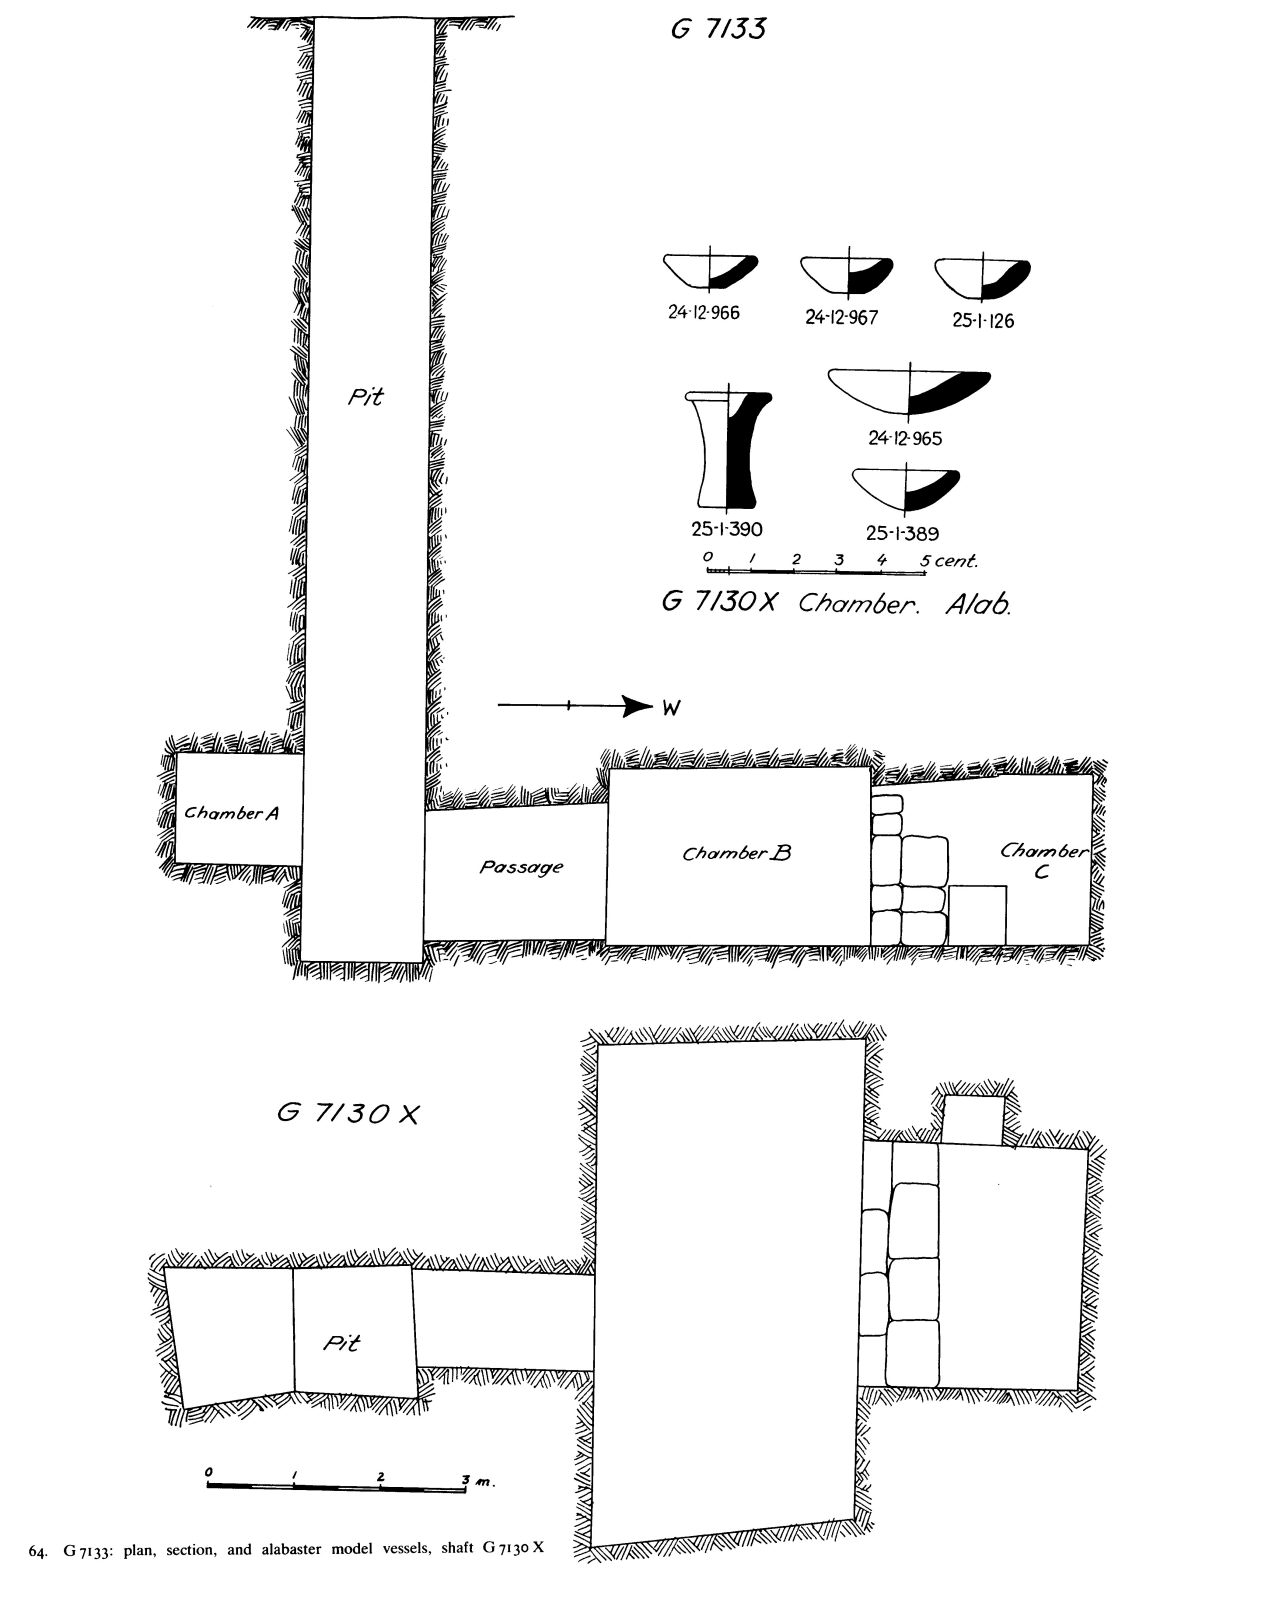 Maps and plans: G 7130, Shaft X (= G 7133) and G 7130, Shaft X: pottery